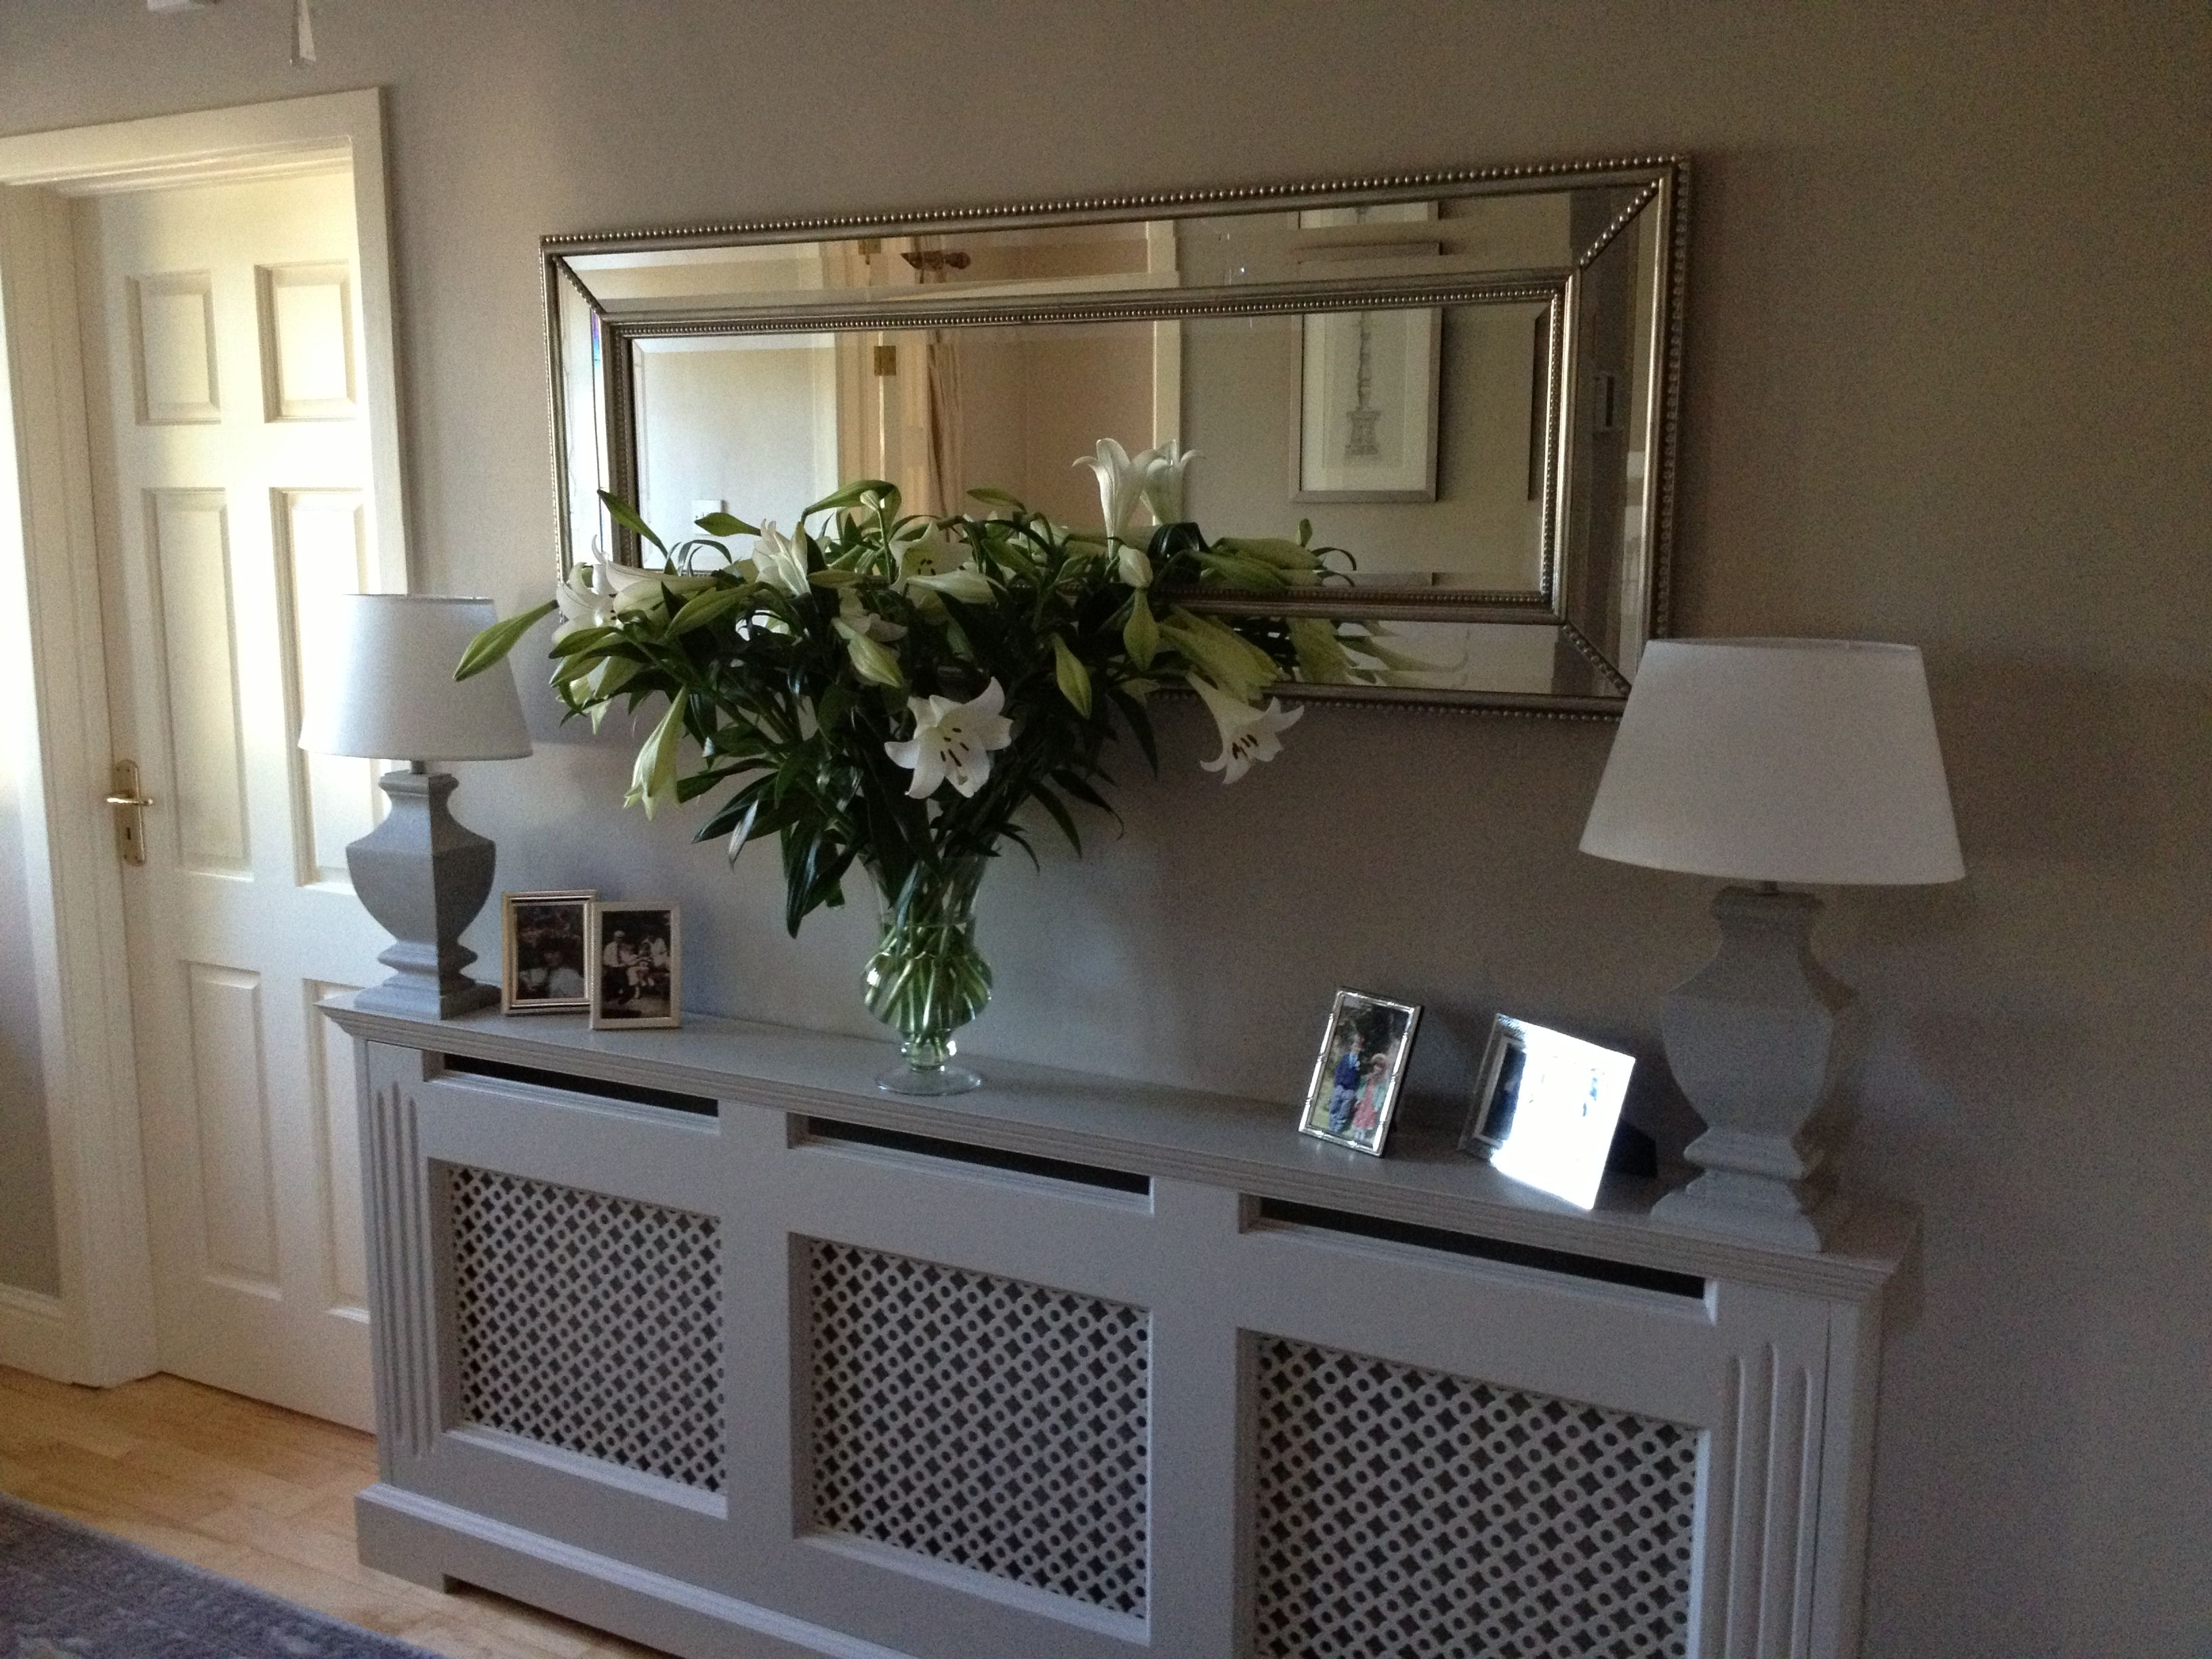 Entry Hall Cabinet radiator coverkevin o'rourke | hallways | pinterest